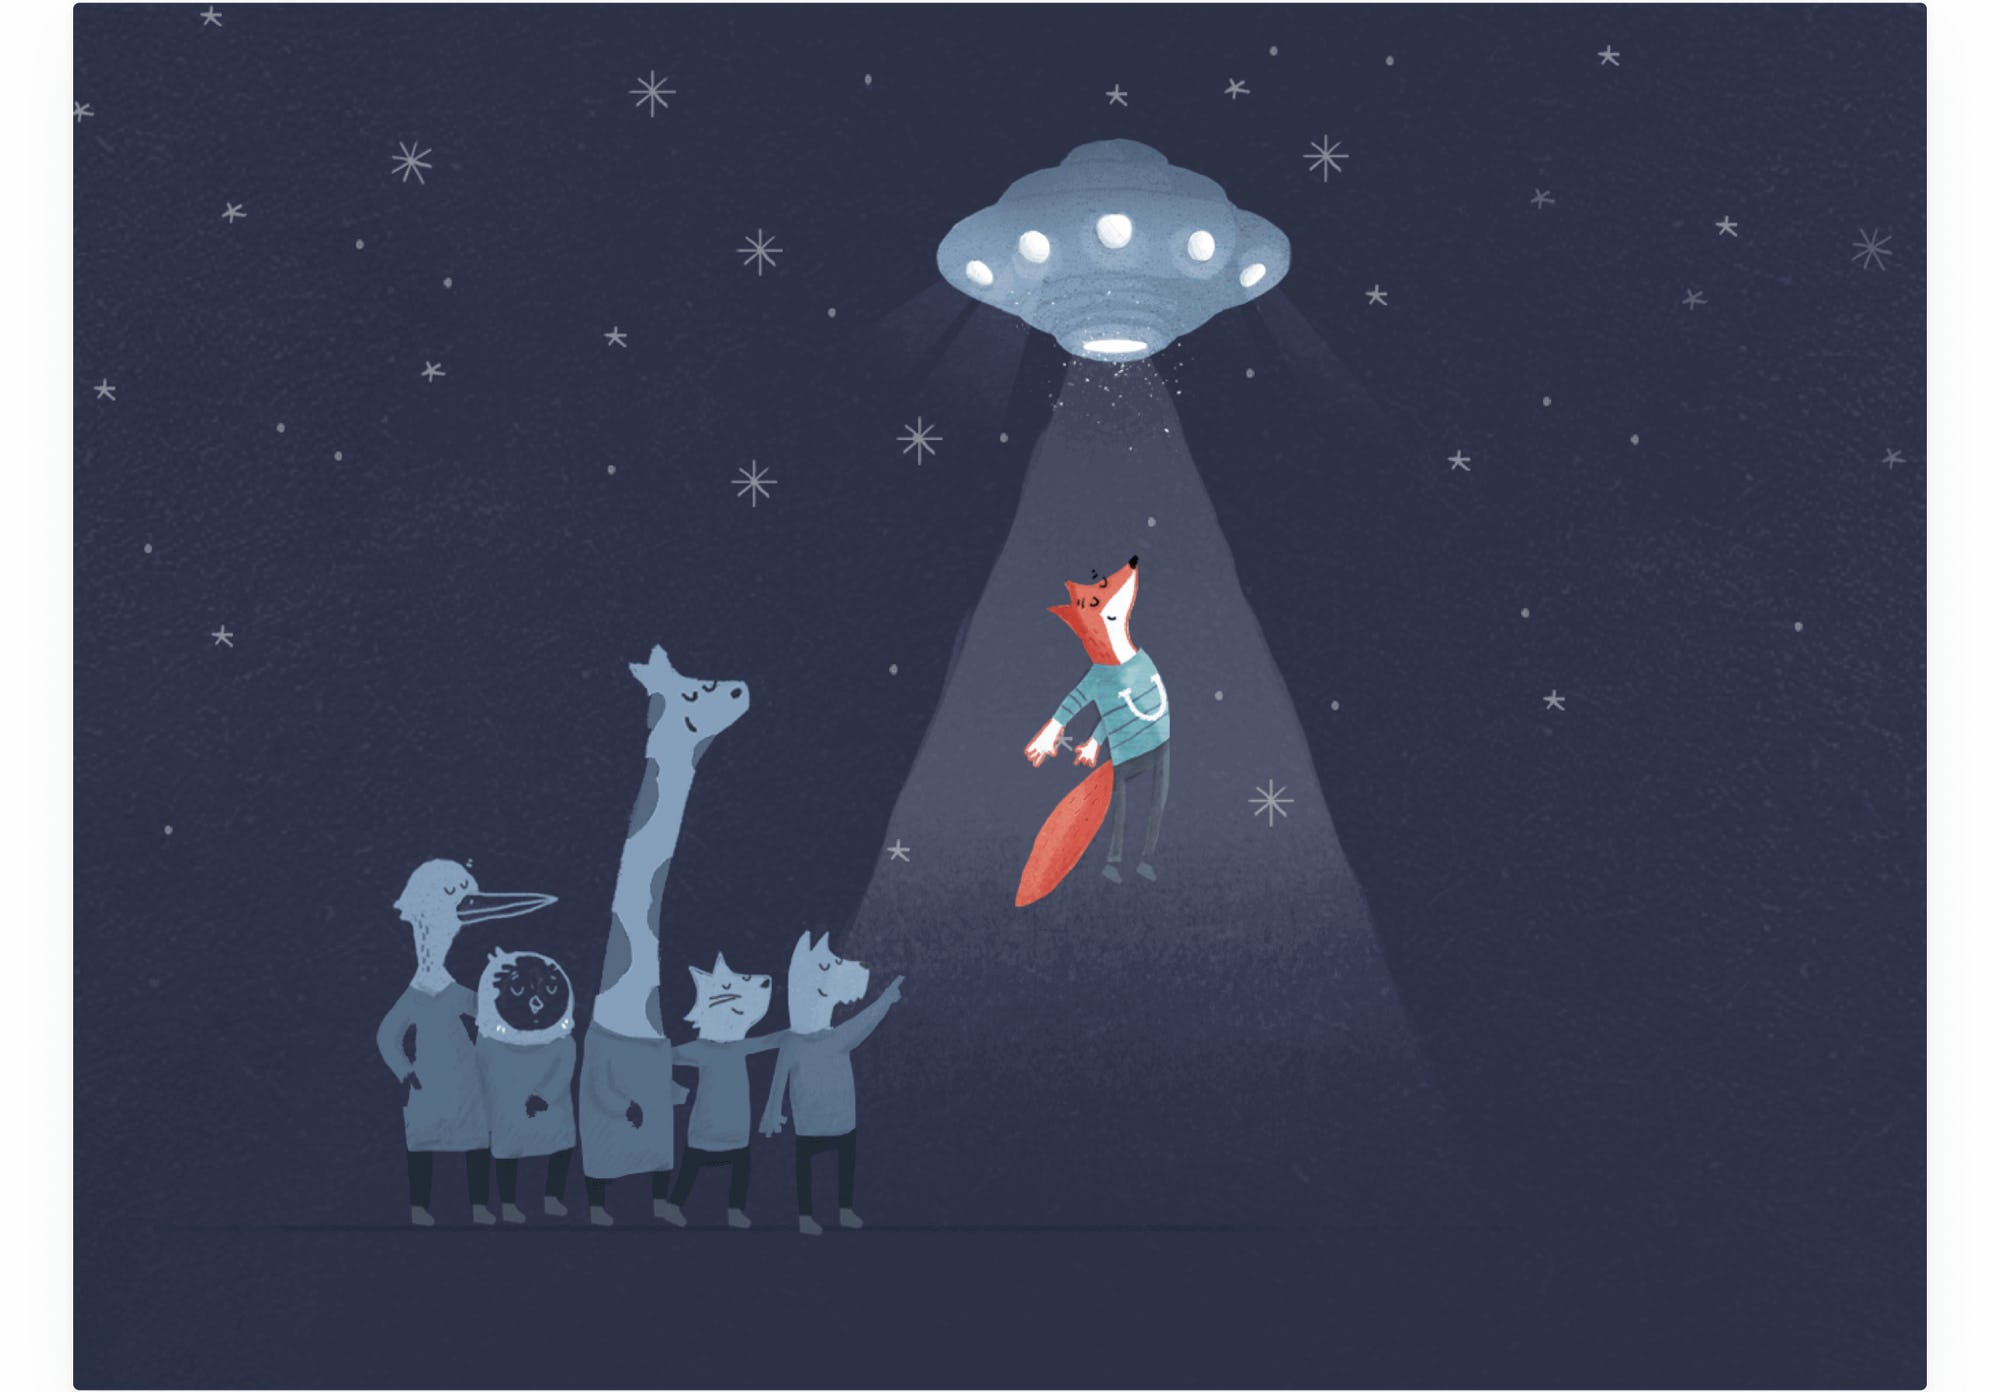 final ufo illustration